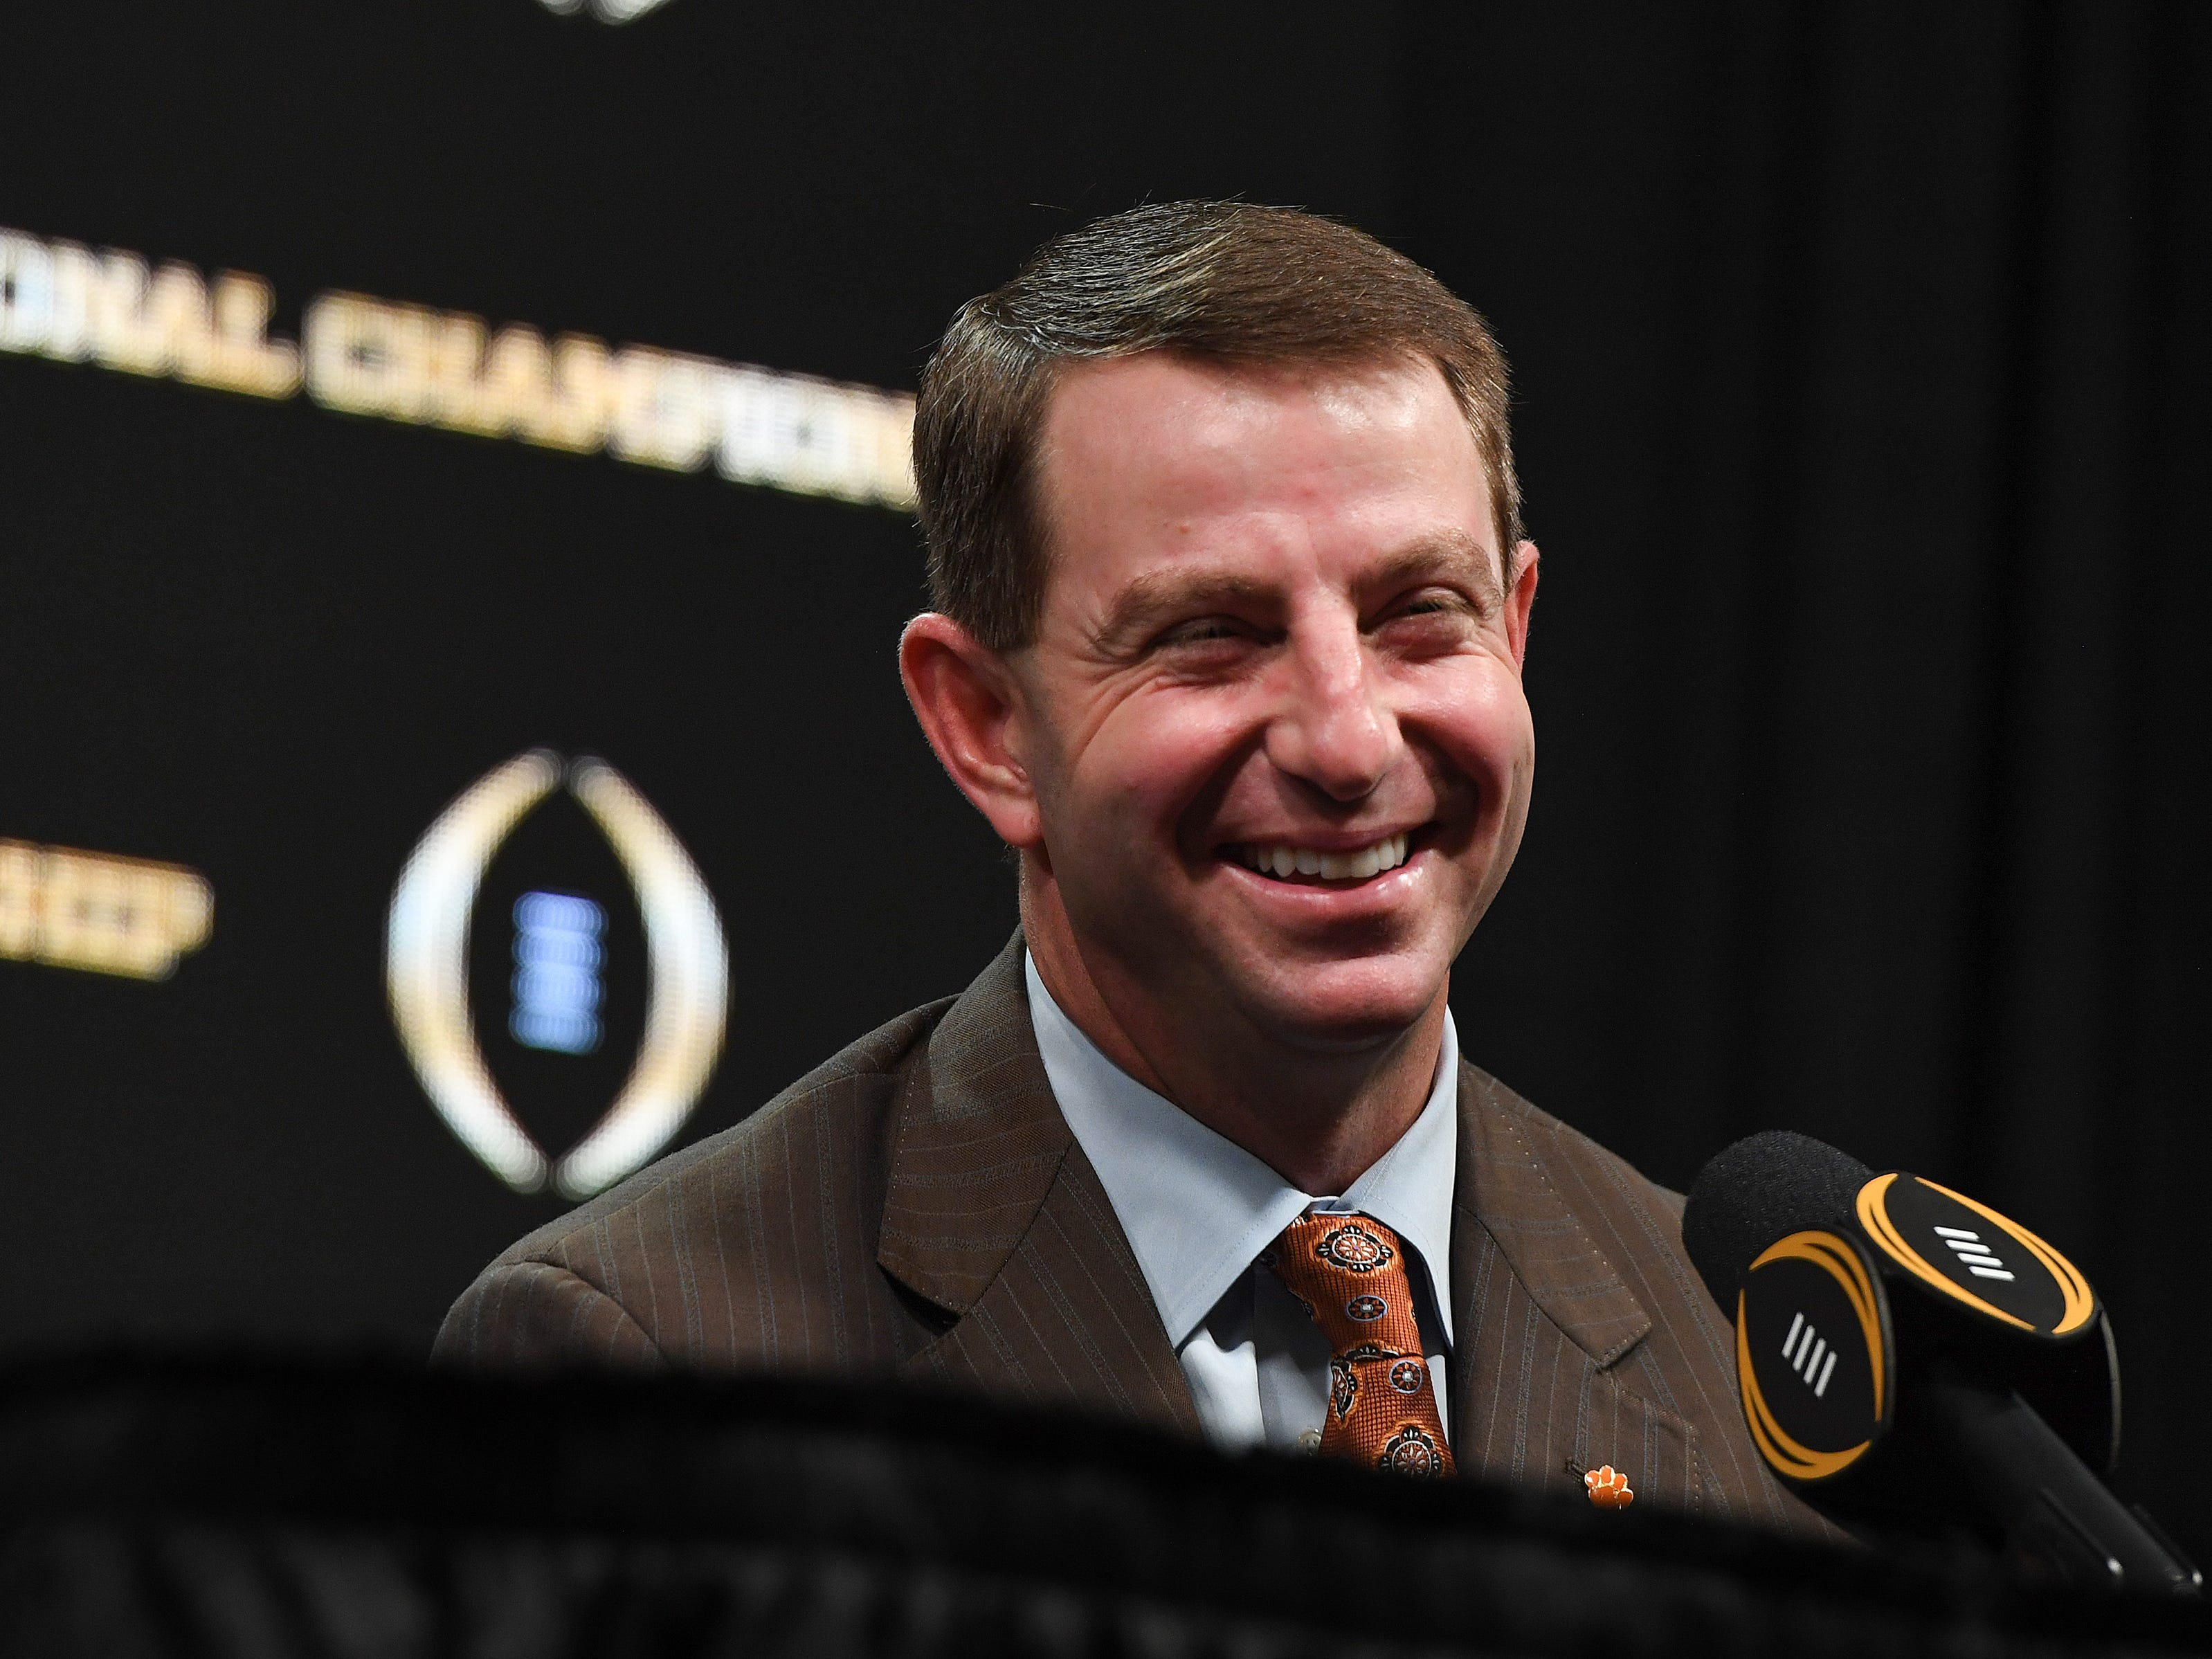 Clemson head coach Dabo Swinney laughs during the College Football Playoff Championship coaches press conference in San Jose, California January 6, 2019.